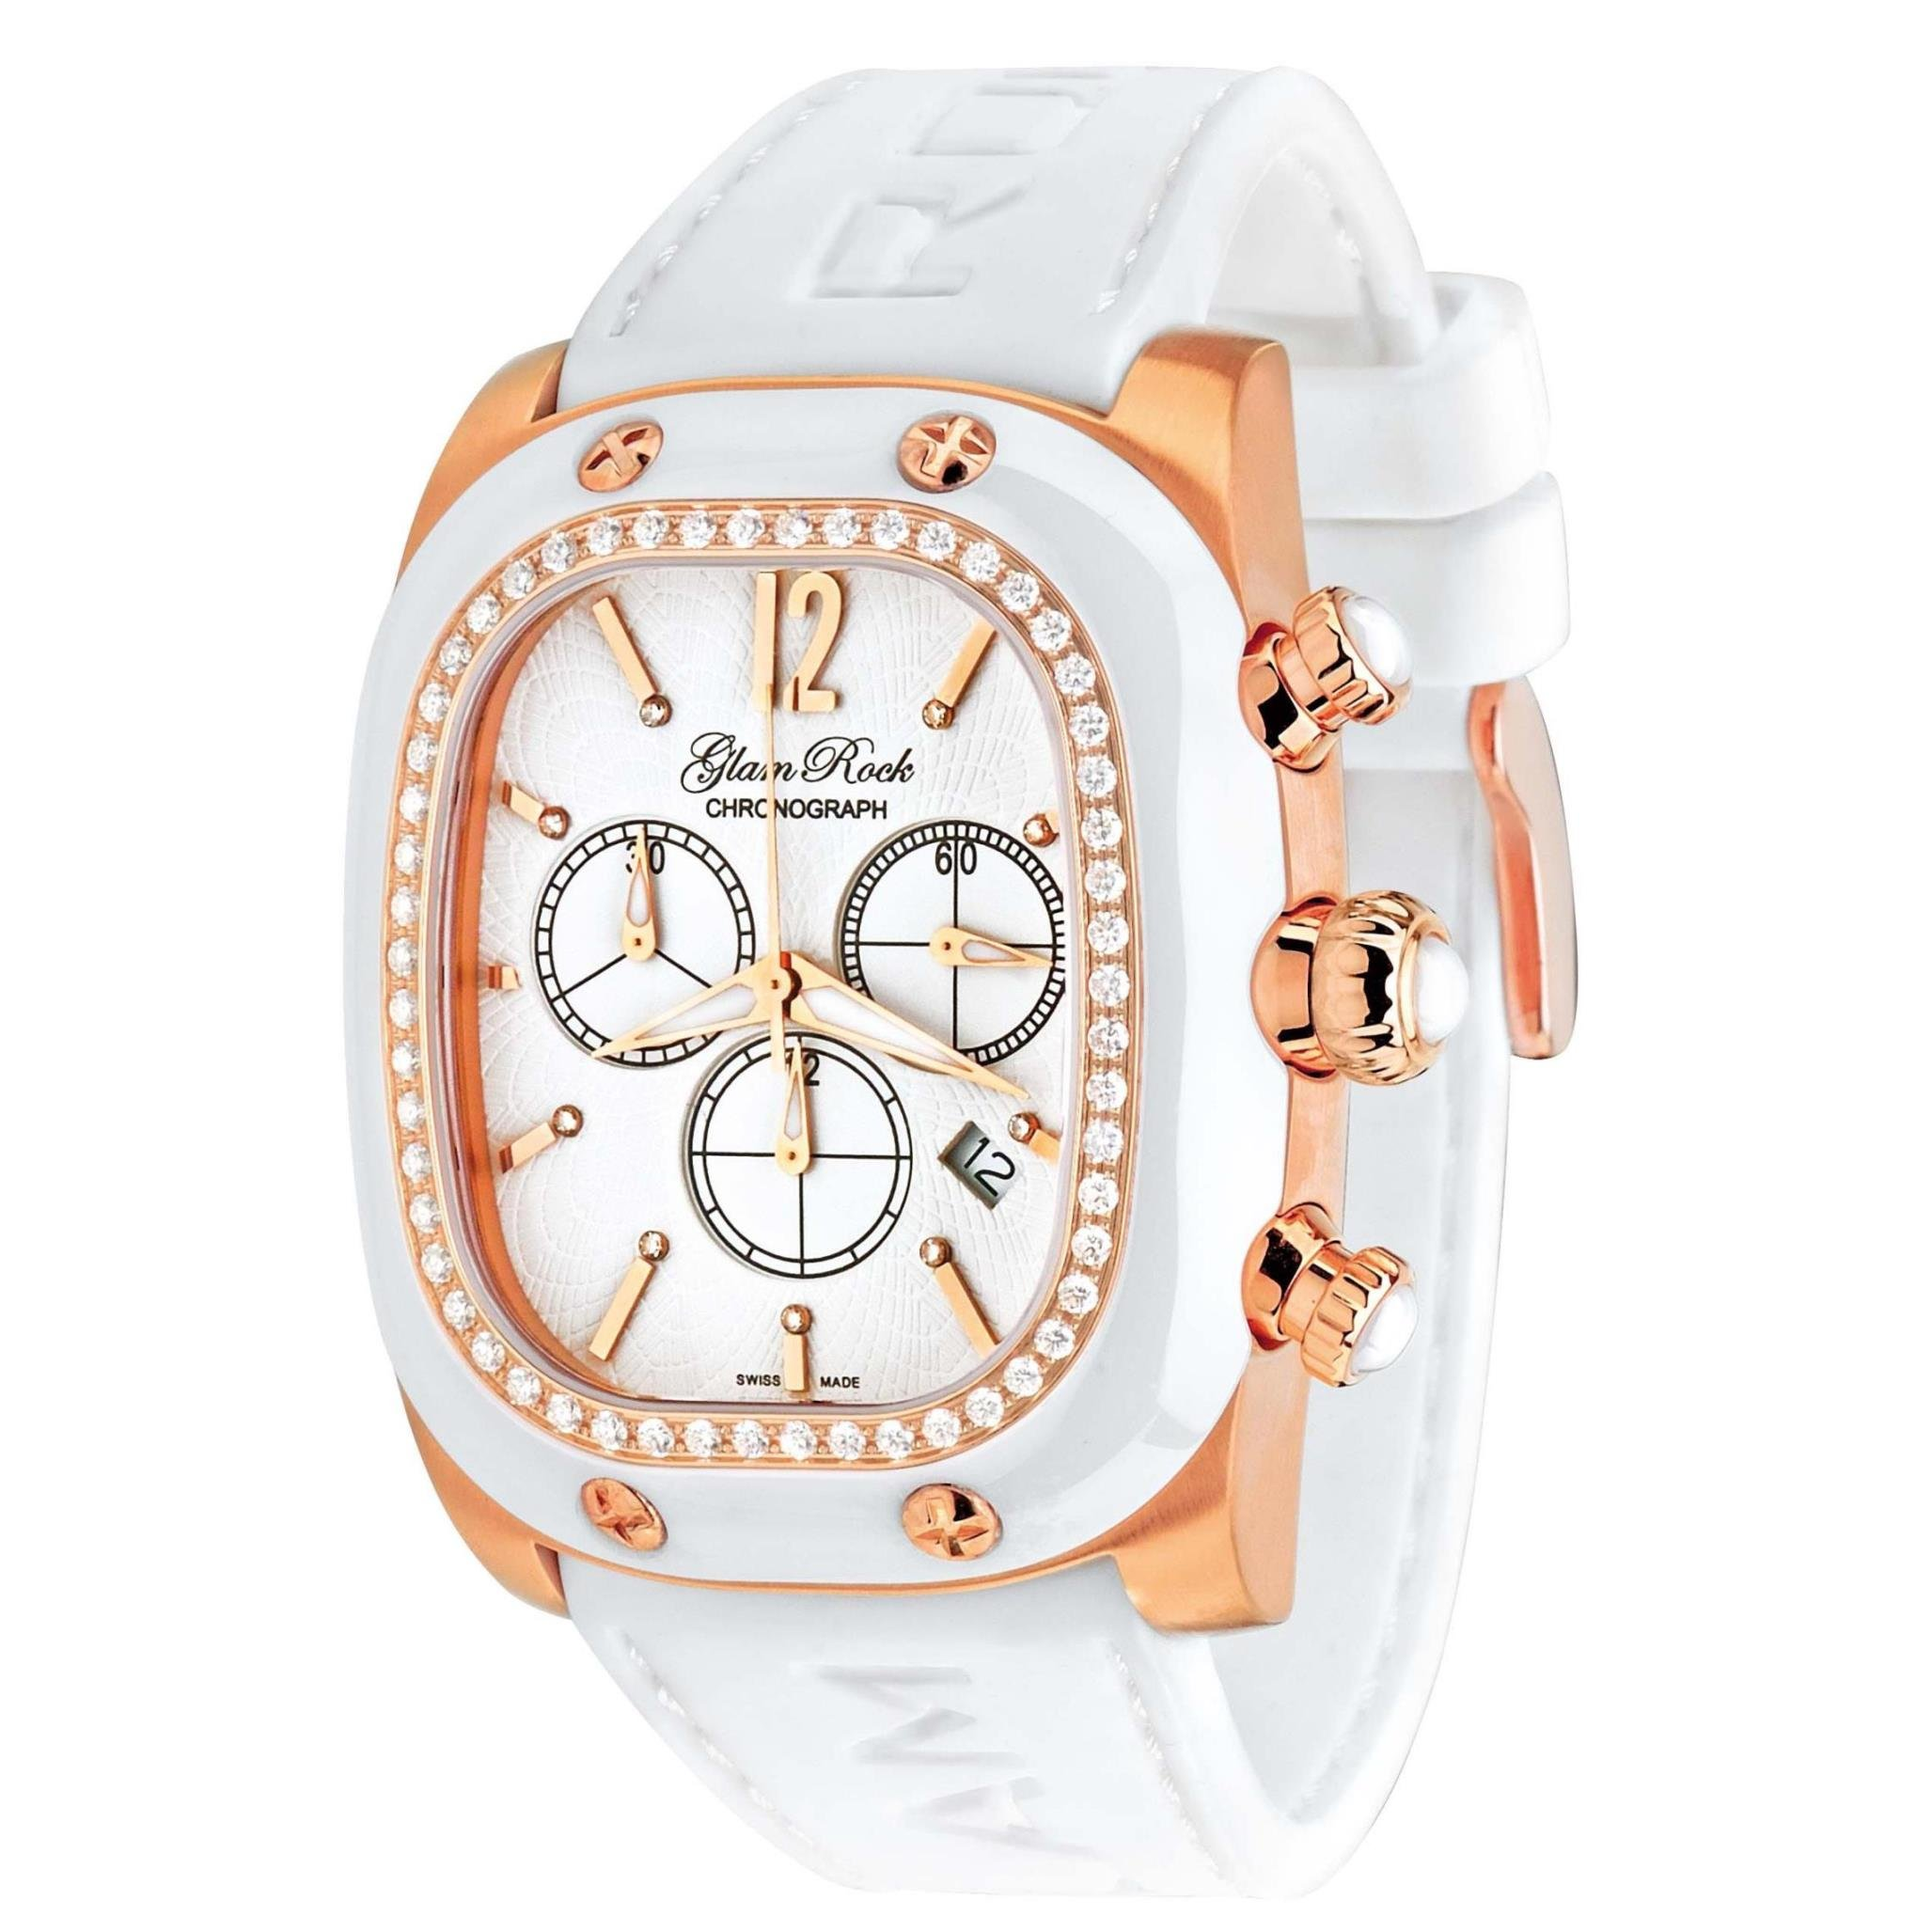 Glam Rock Women's GR70100D1 Gulfstream Collection Chronograph Diamond Accented Watch by Glam Rock